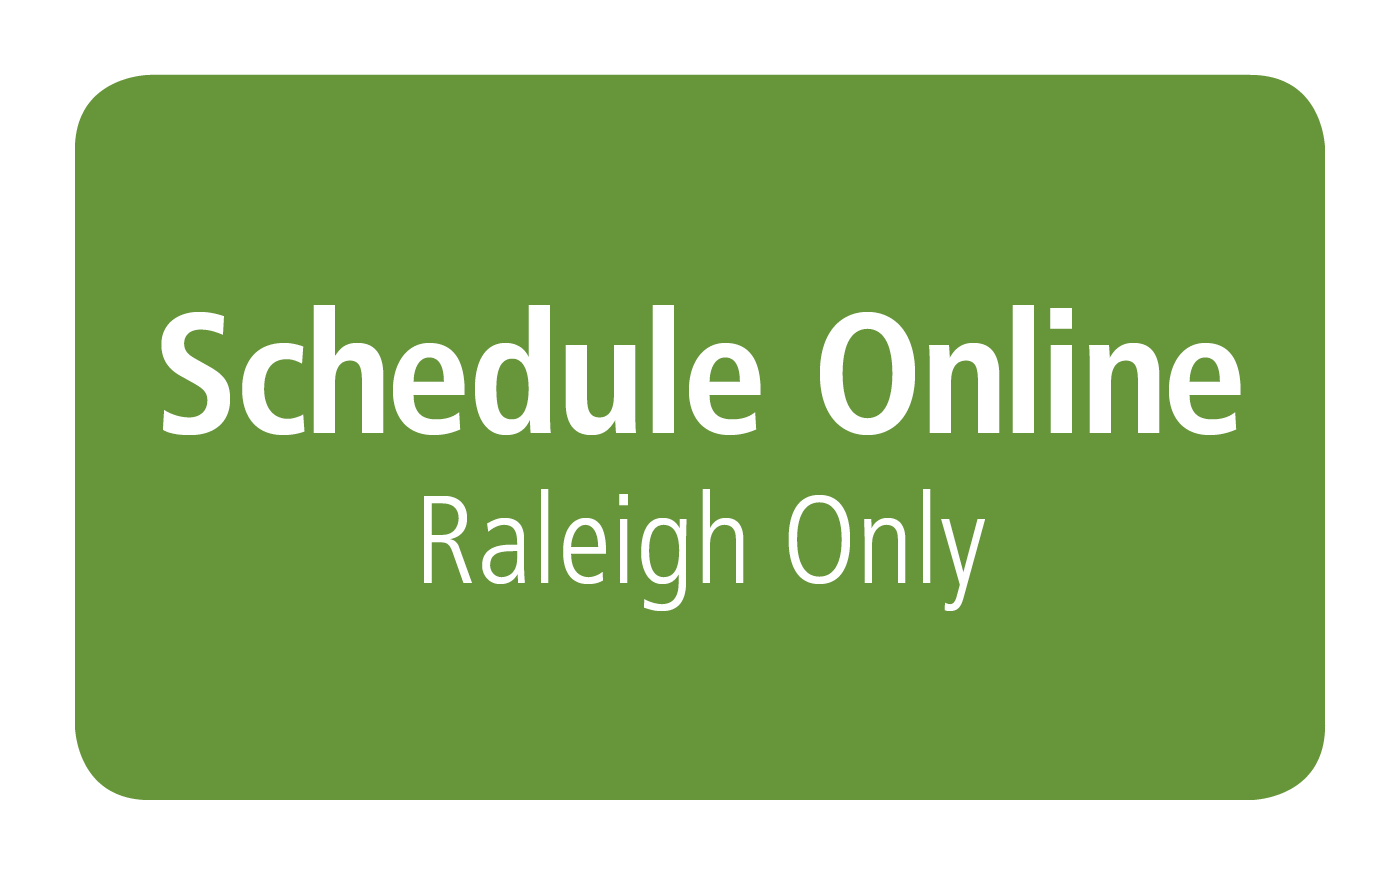 schedule online Raleigh only.png